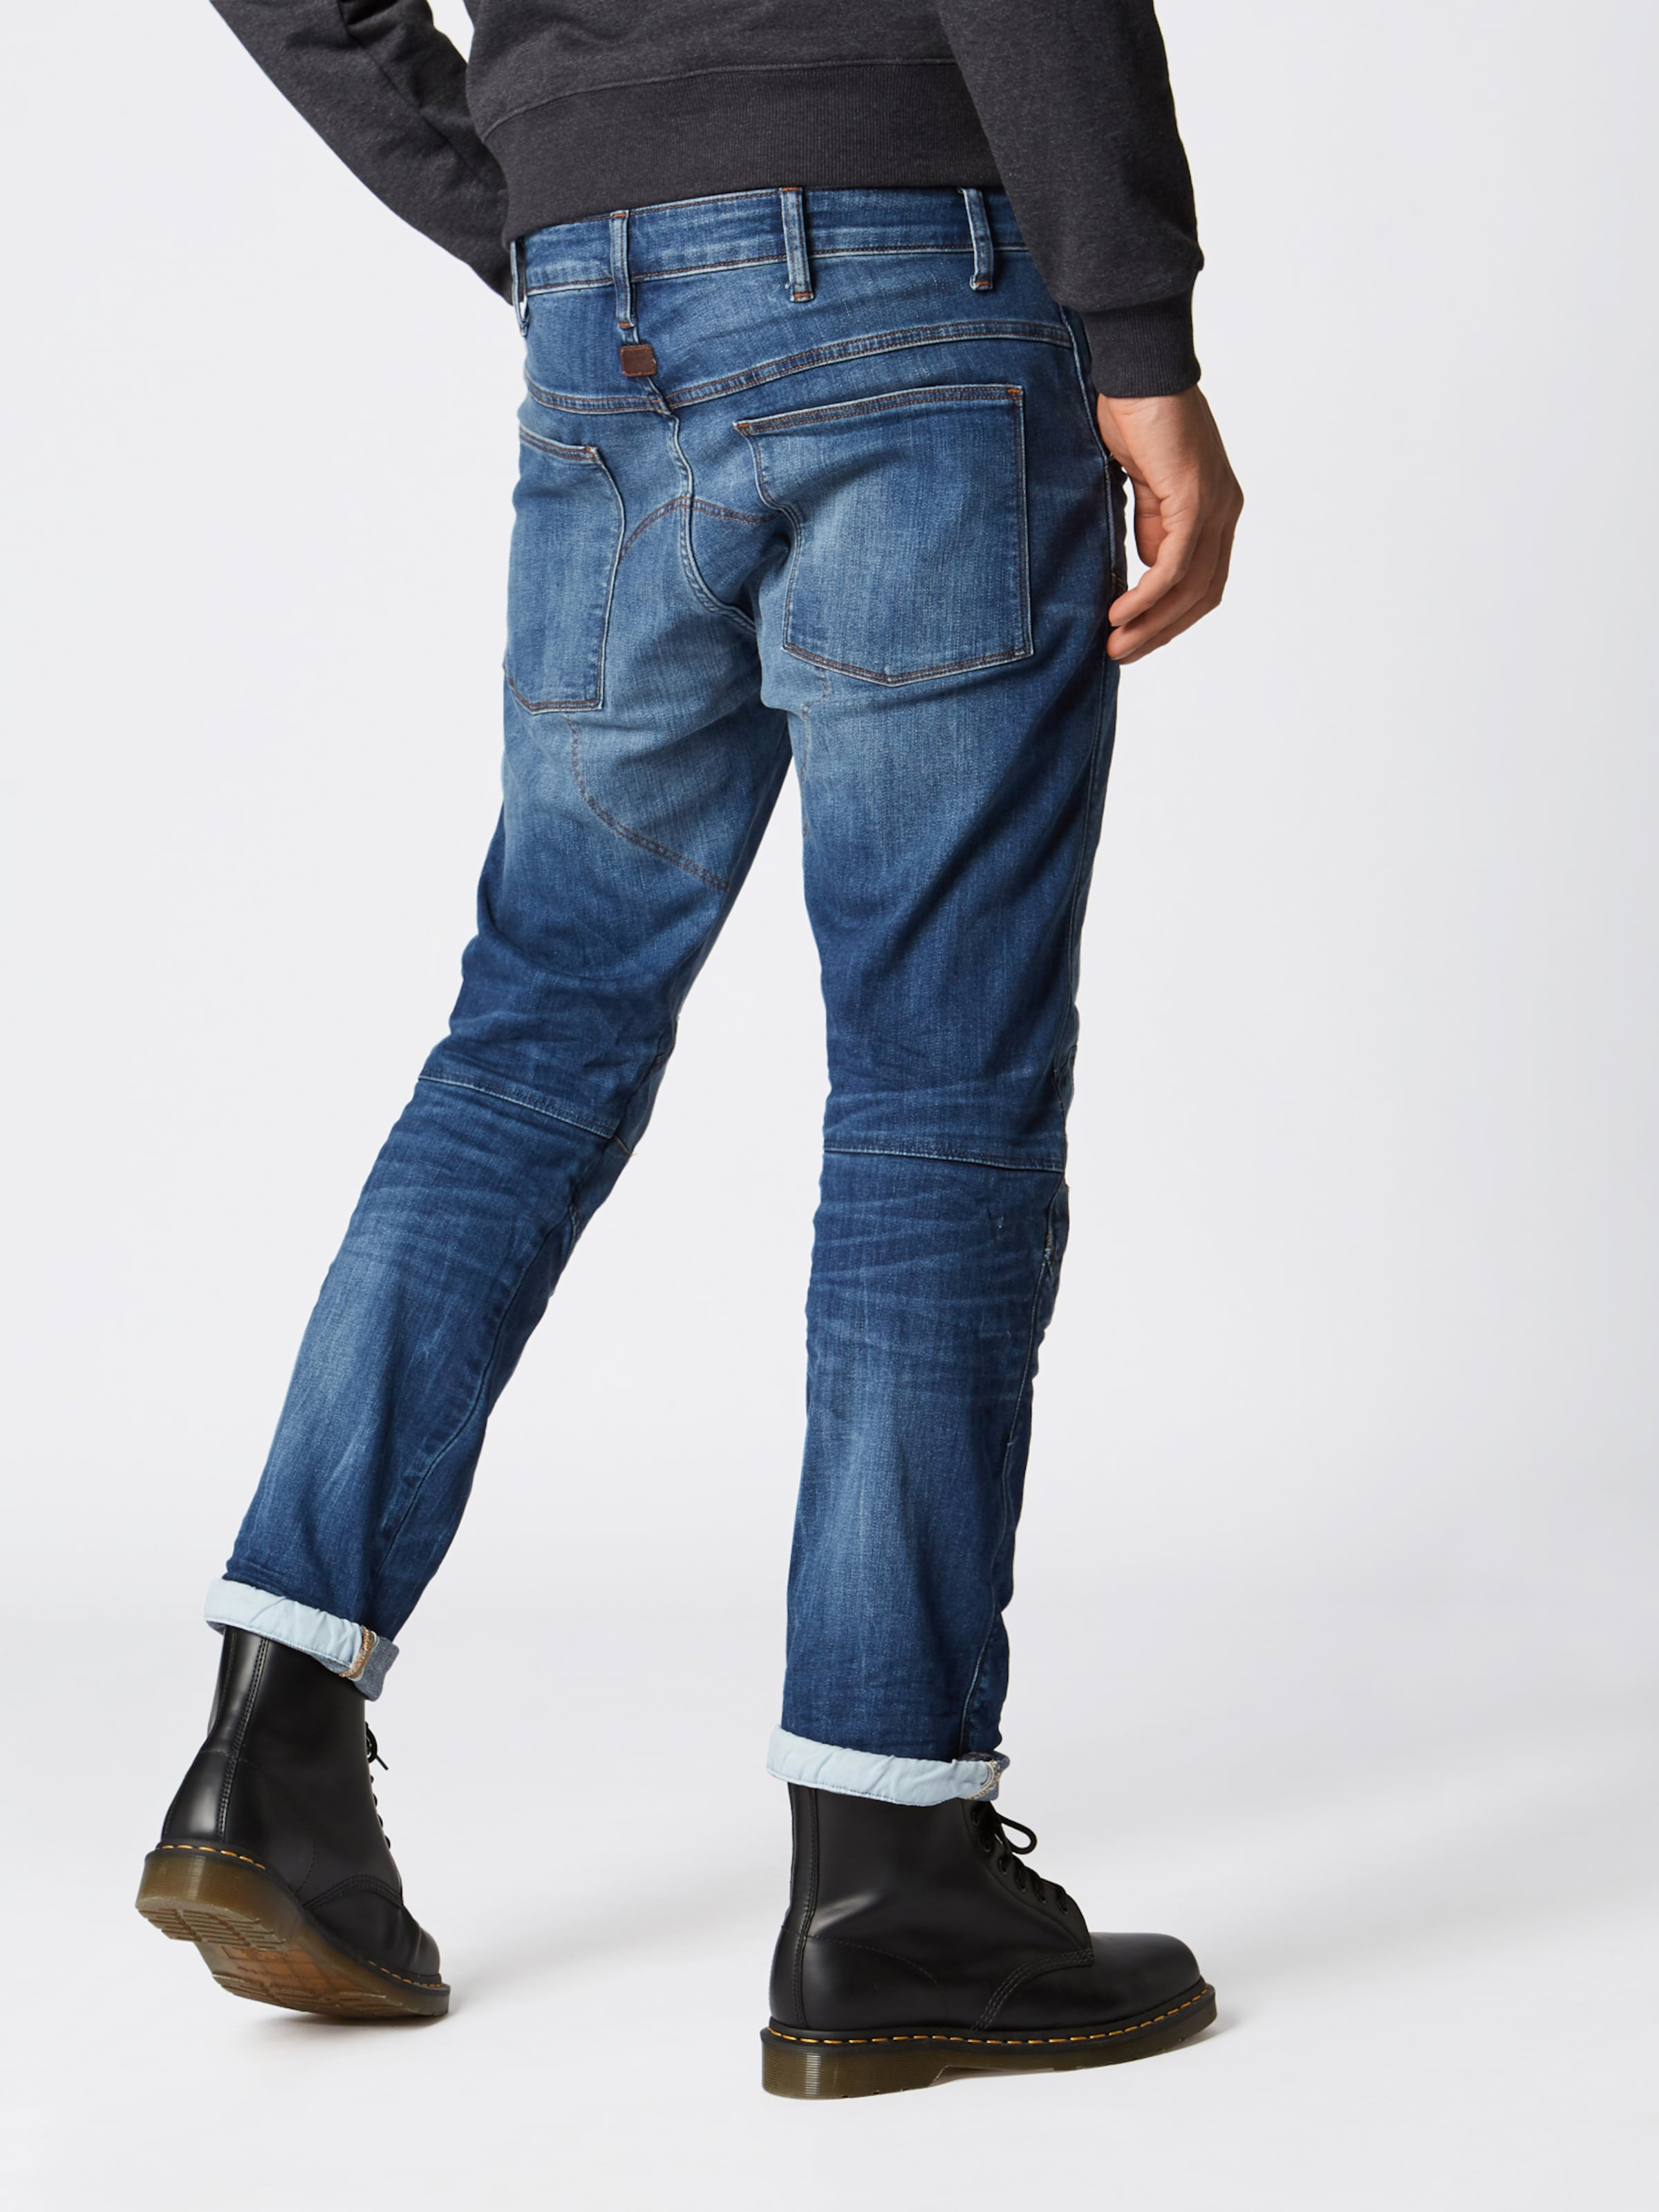 Raw Jean Bleu G star En '5620elwood3d Straight' Denim tsrdhQC